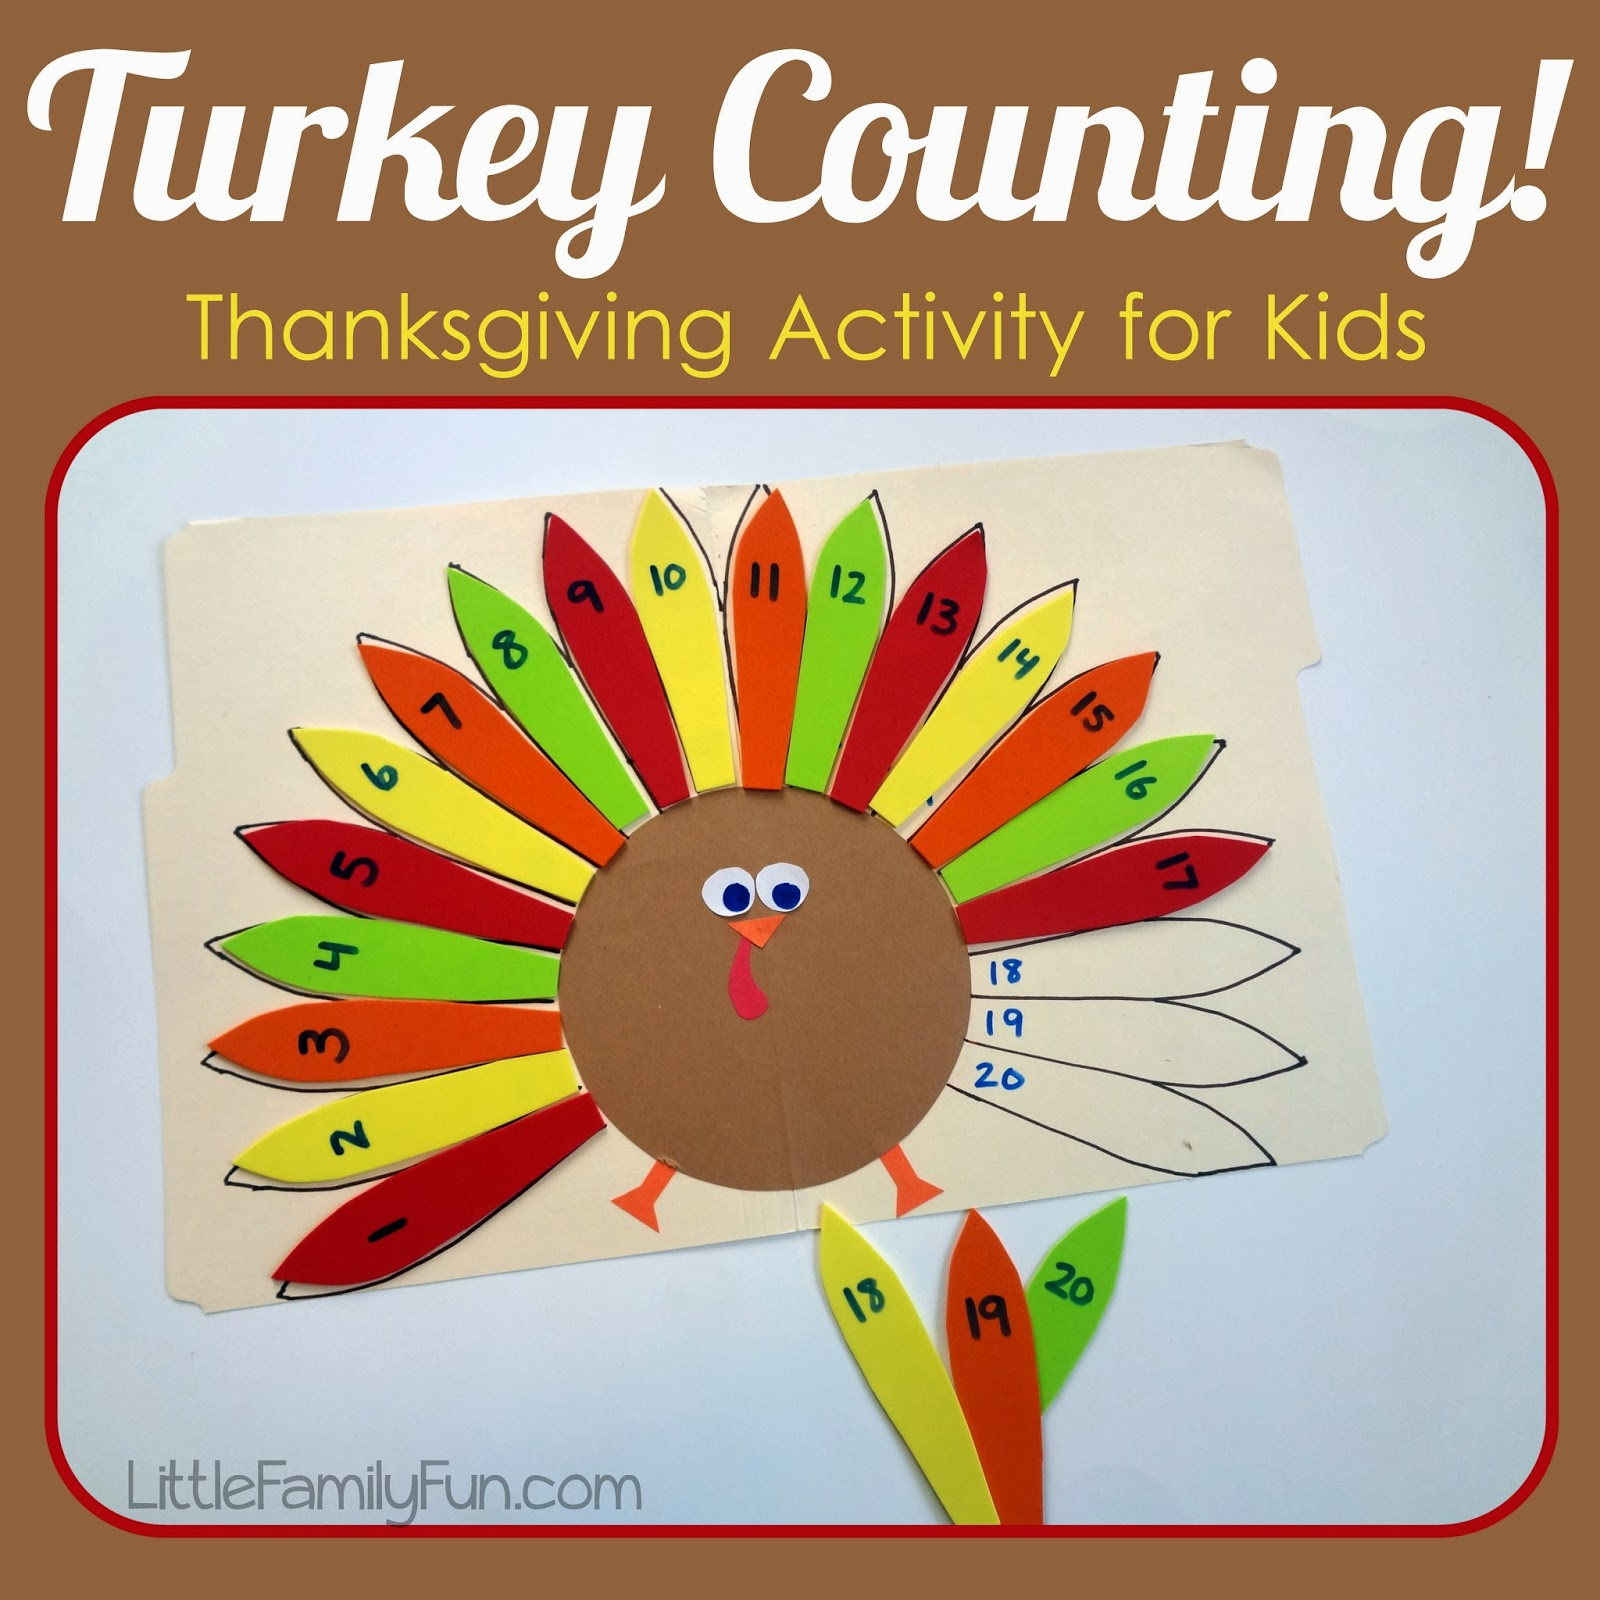 Counting Turkey Feathers